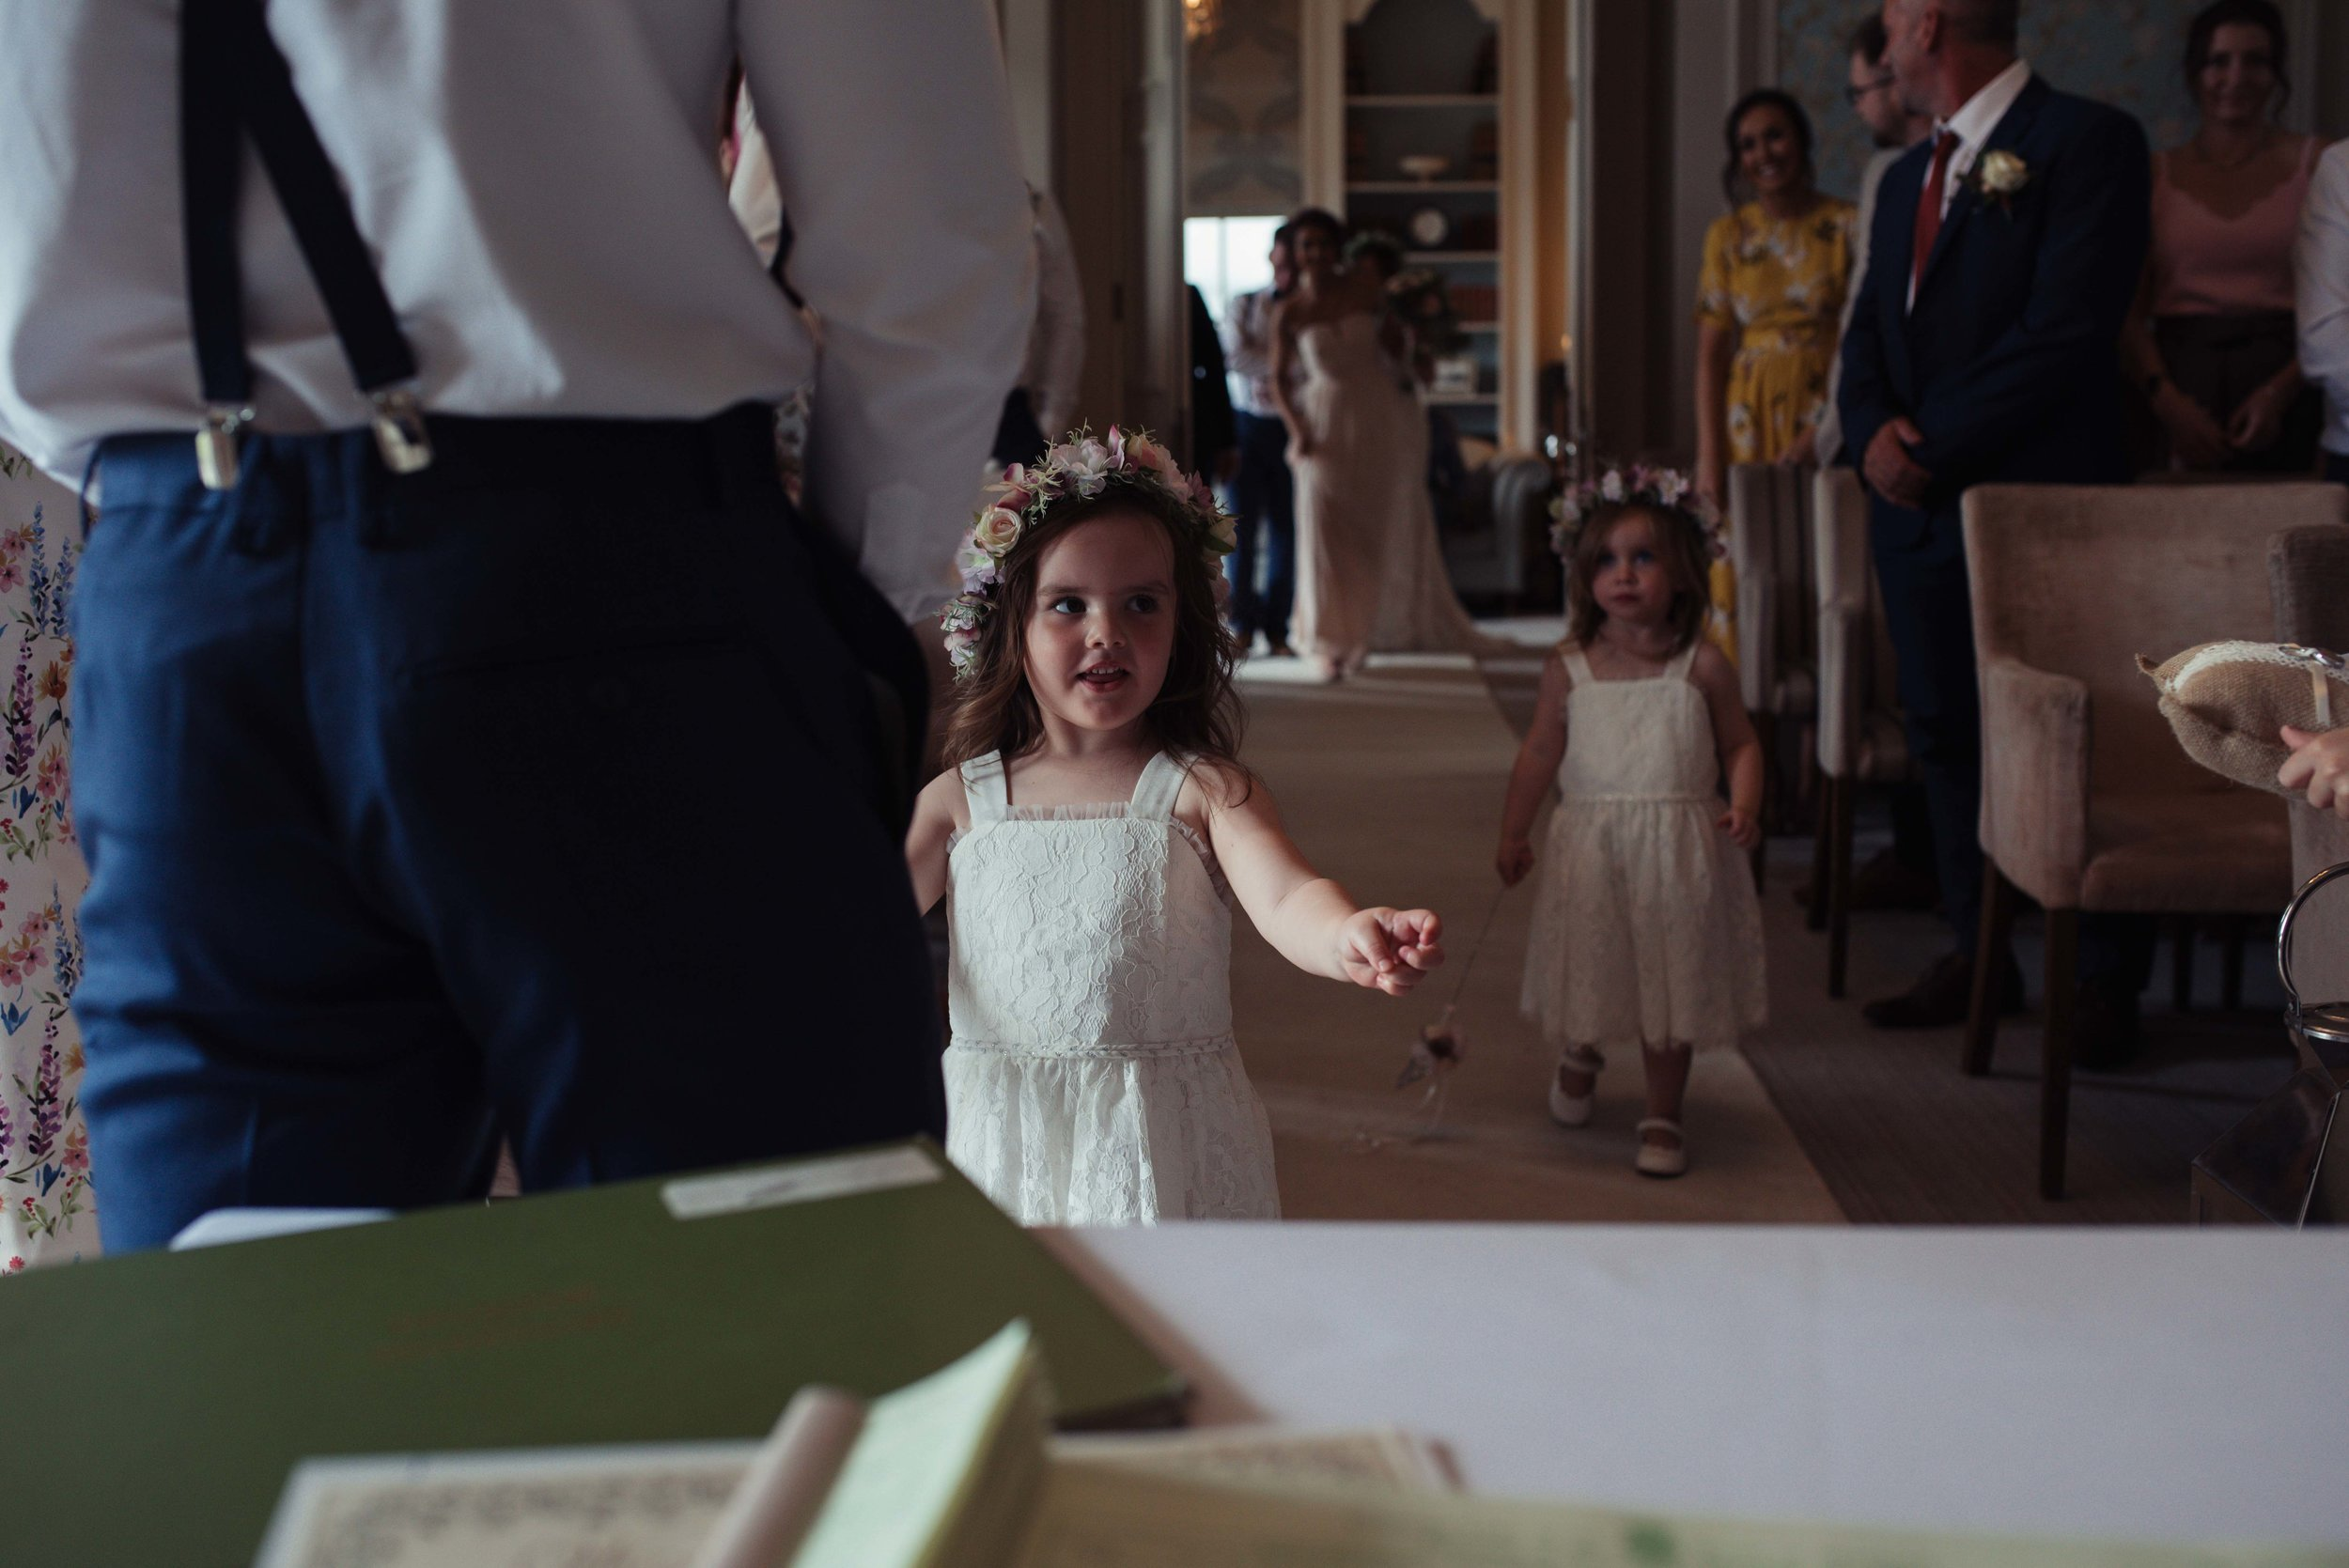 The flower girl, daughter of the bride and groom, walks up the aisle to her dad